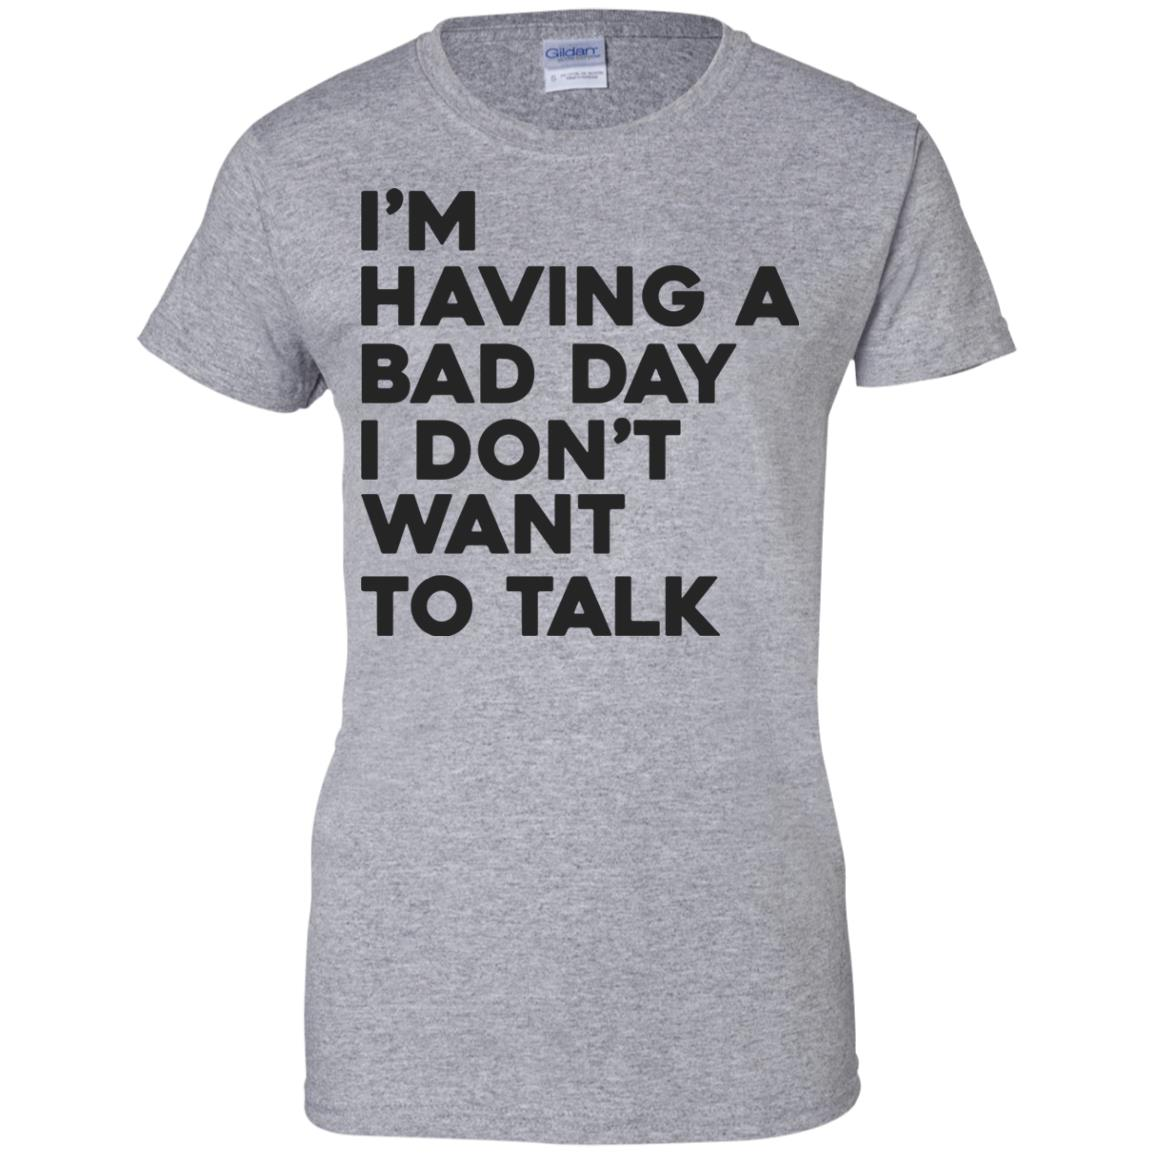 image 243px I'm having a bad day I don't want to talk t shirt, hoodies, tank